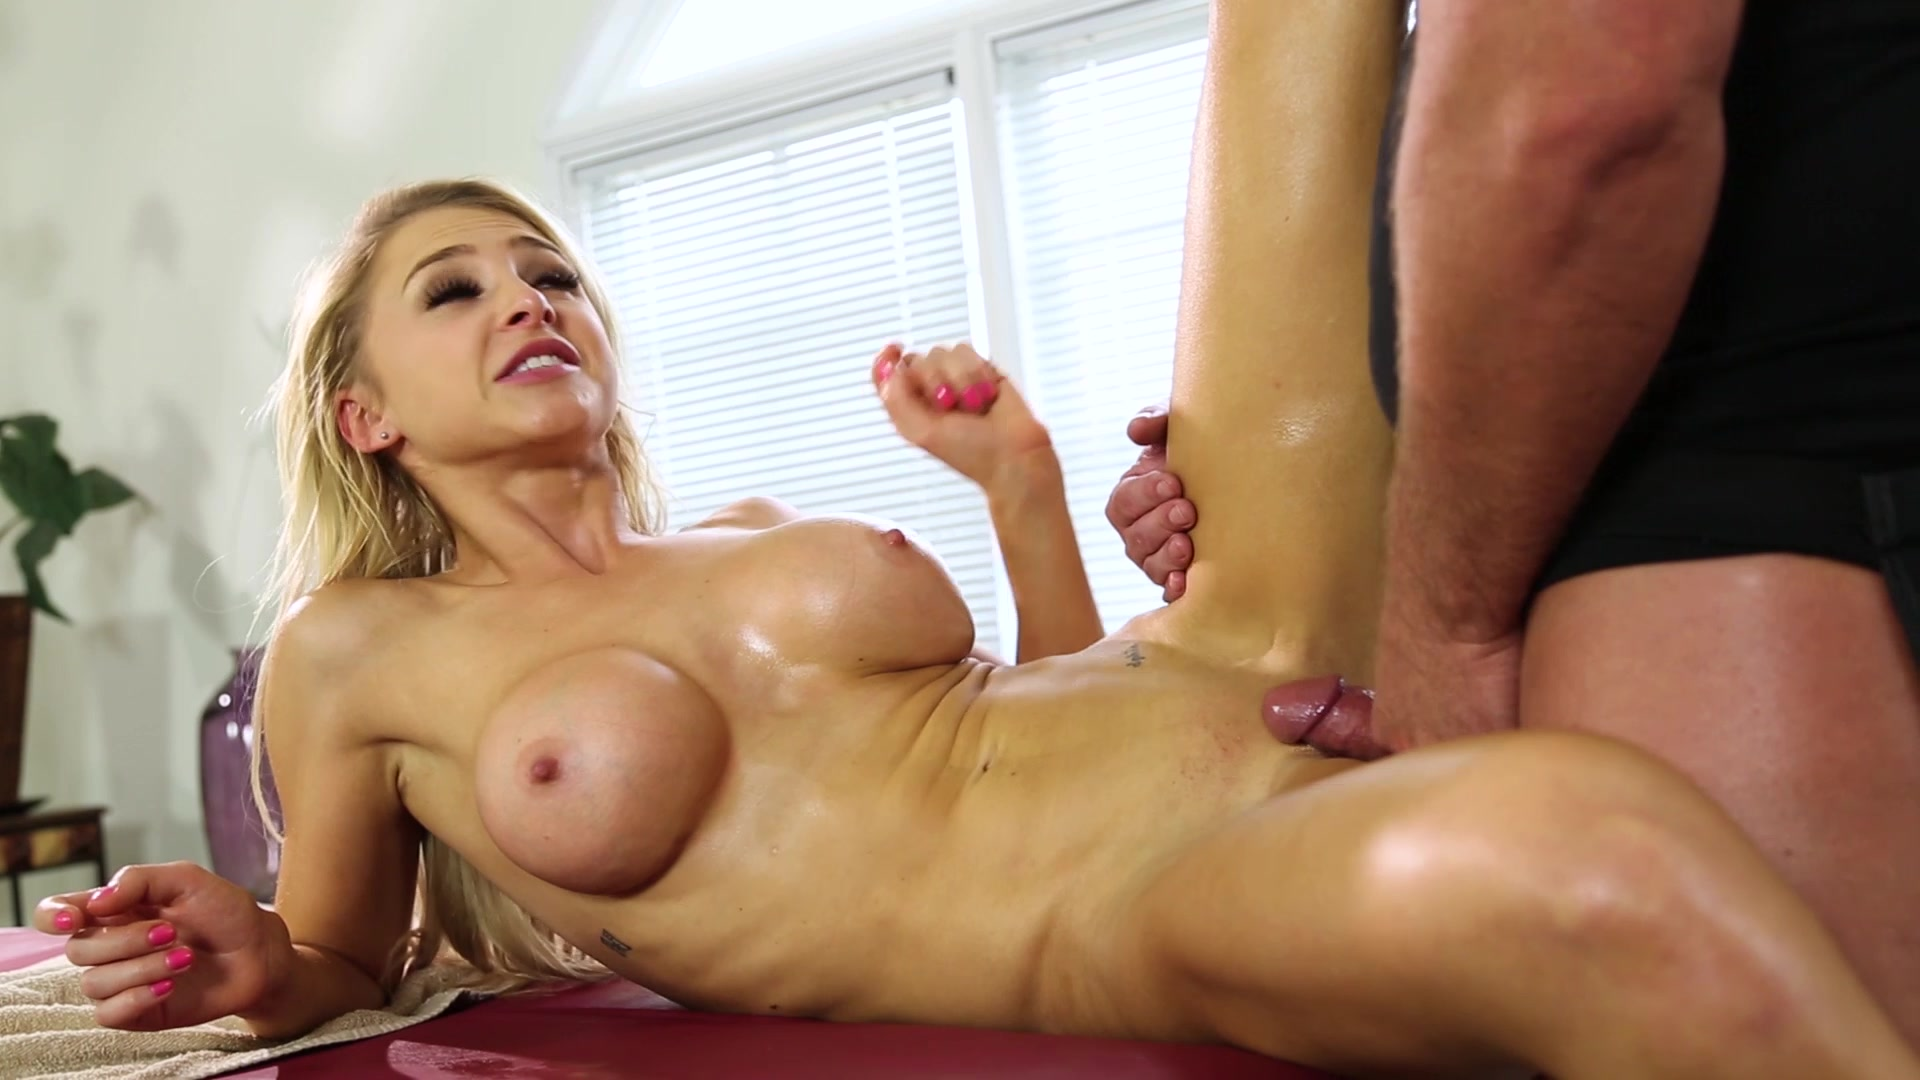 Mommy Me Gangster 3 Dvd Porn trailers honey it started as a footjob porn video adult dvd